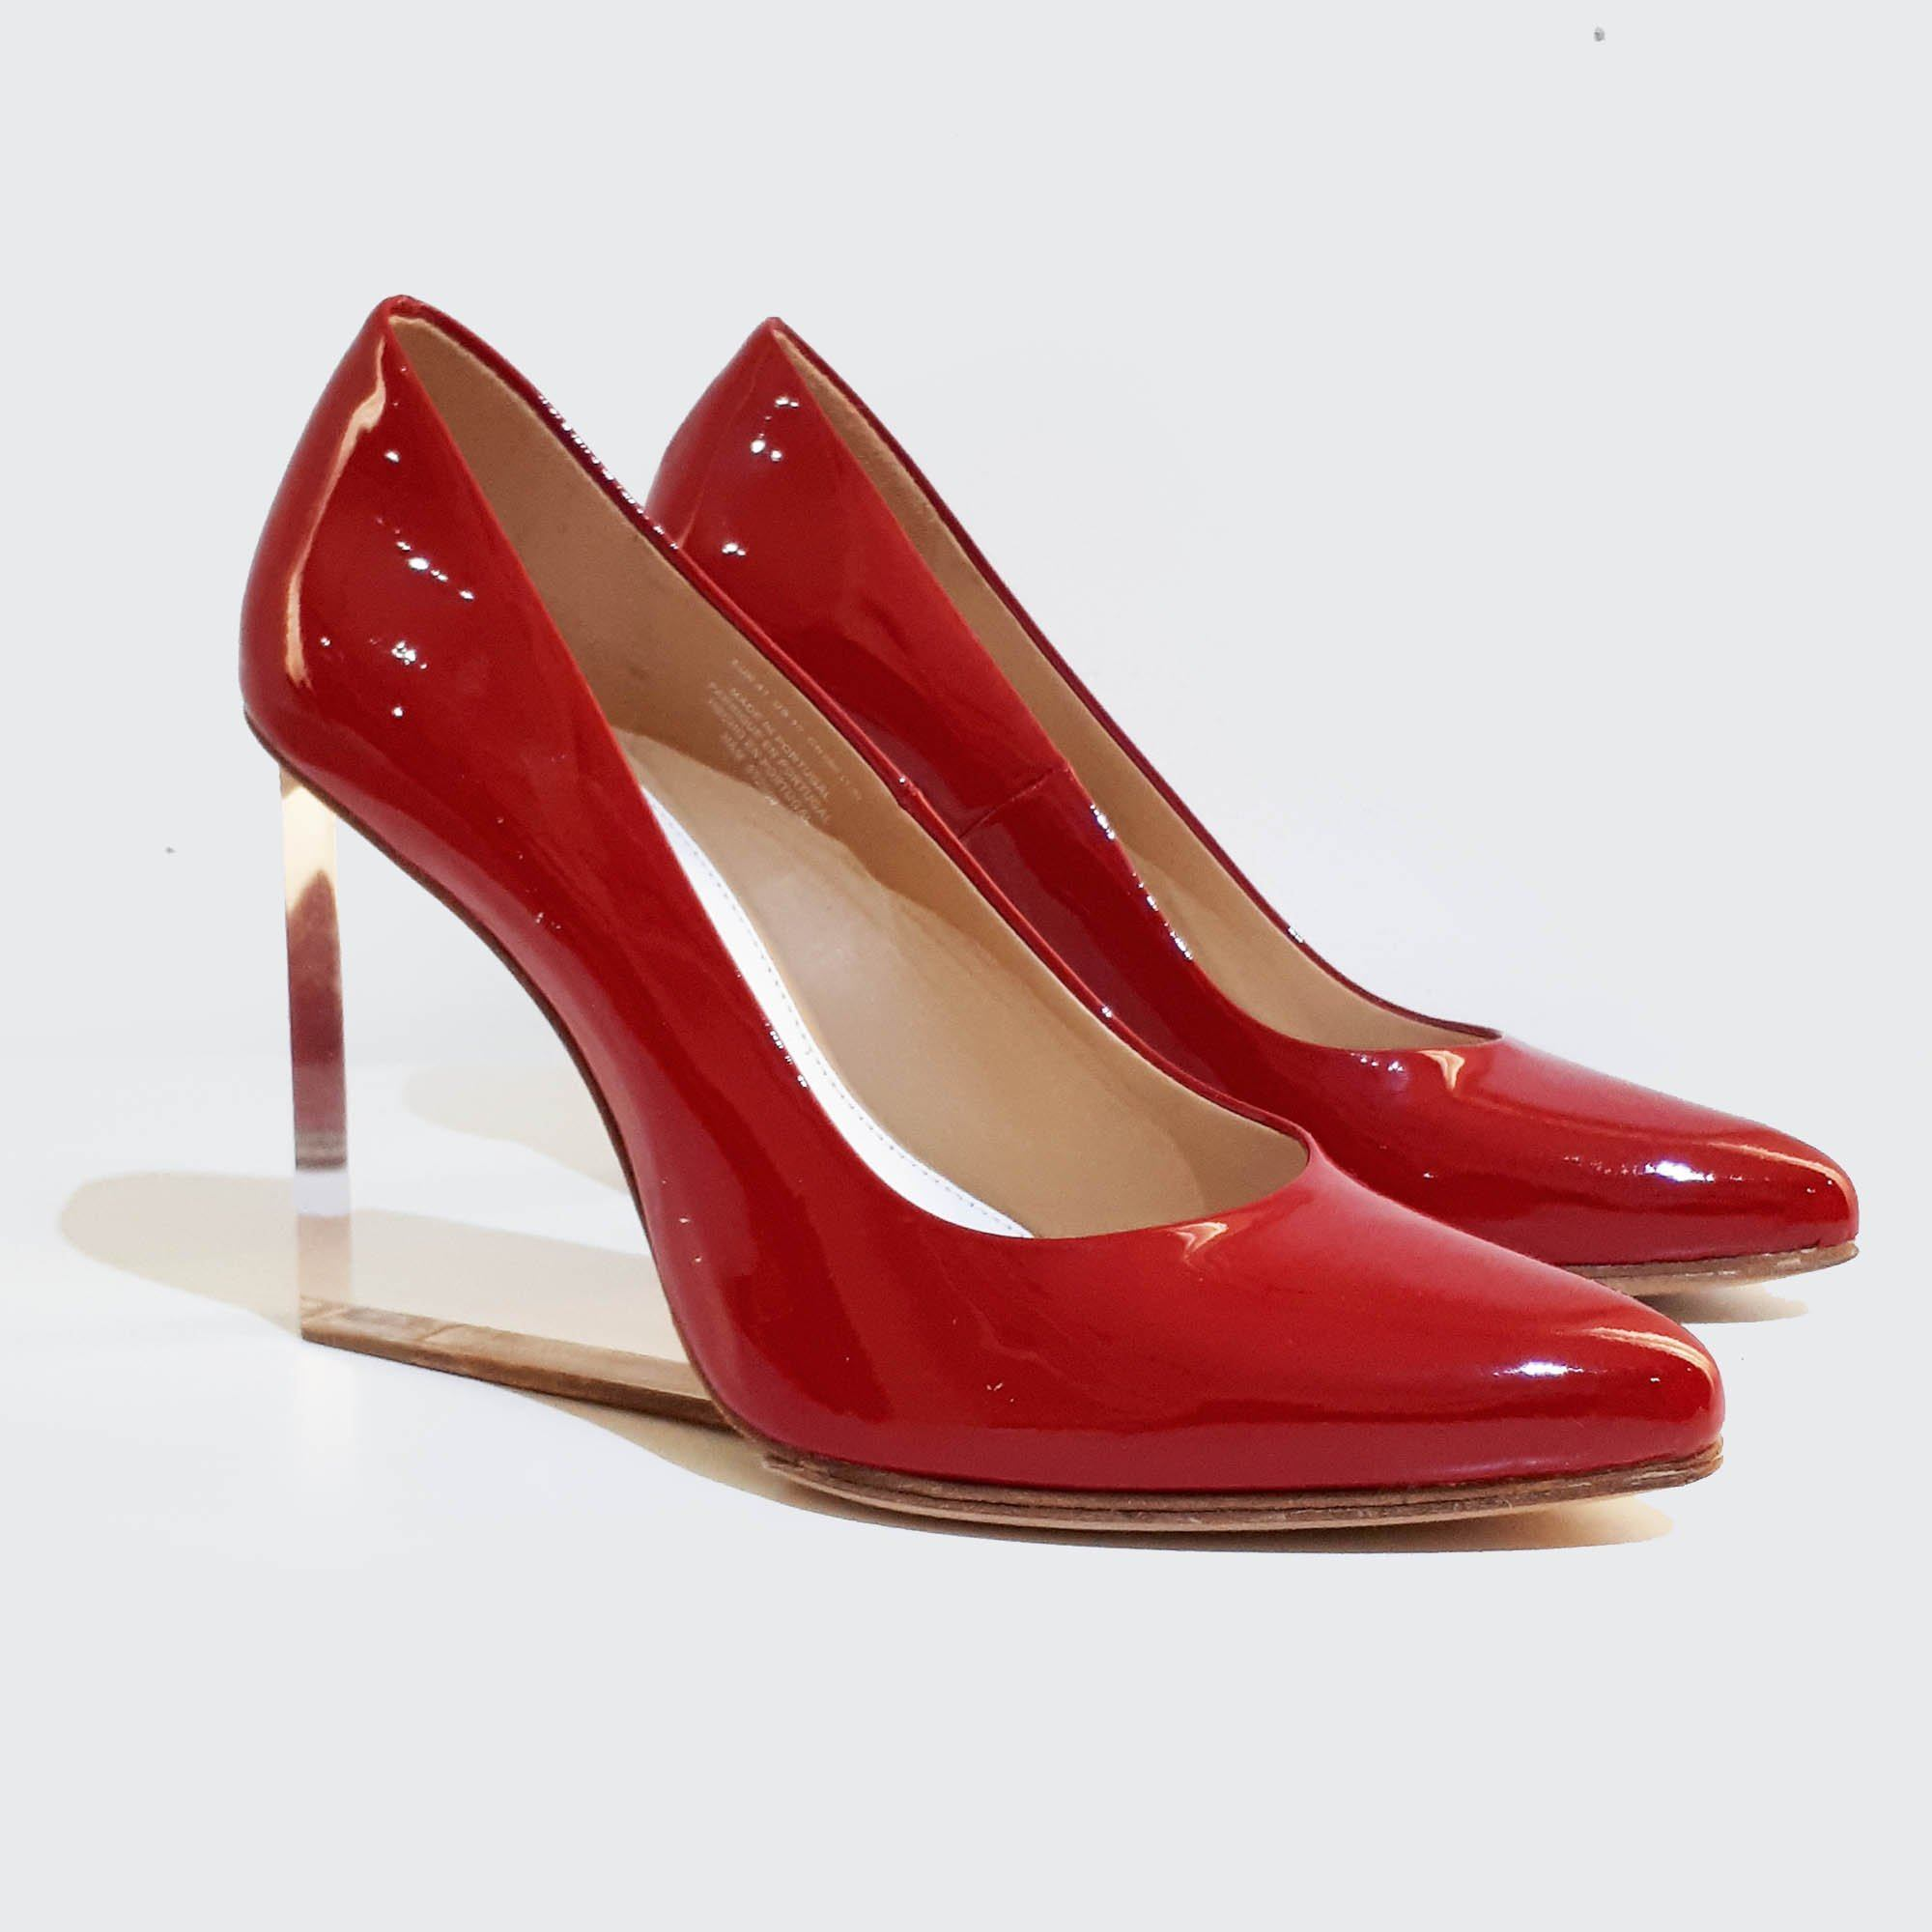 Maison Martin Margiela for H&M Red Wedge Pumps